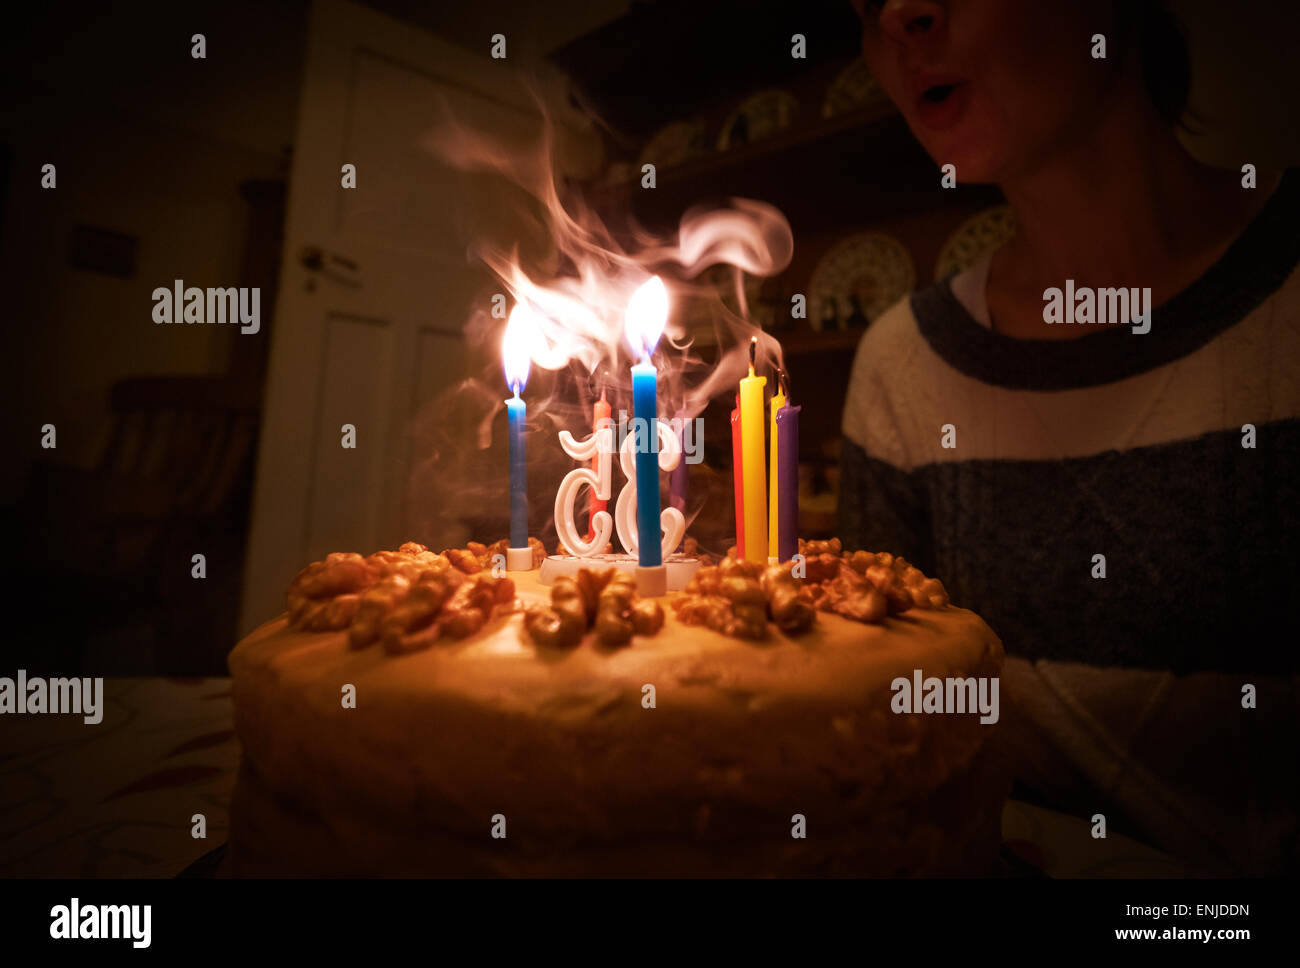 A Woman Blowing Out Candles On Her Birthday Cake Instagram Type